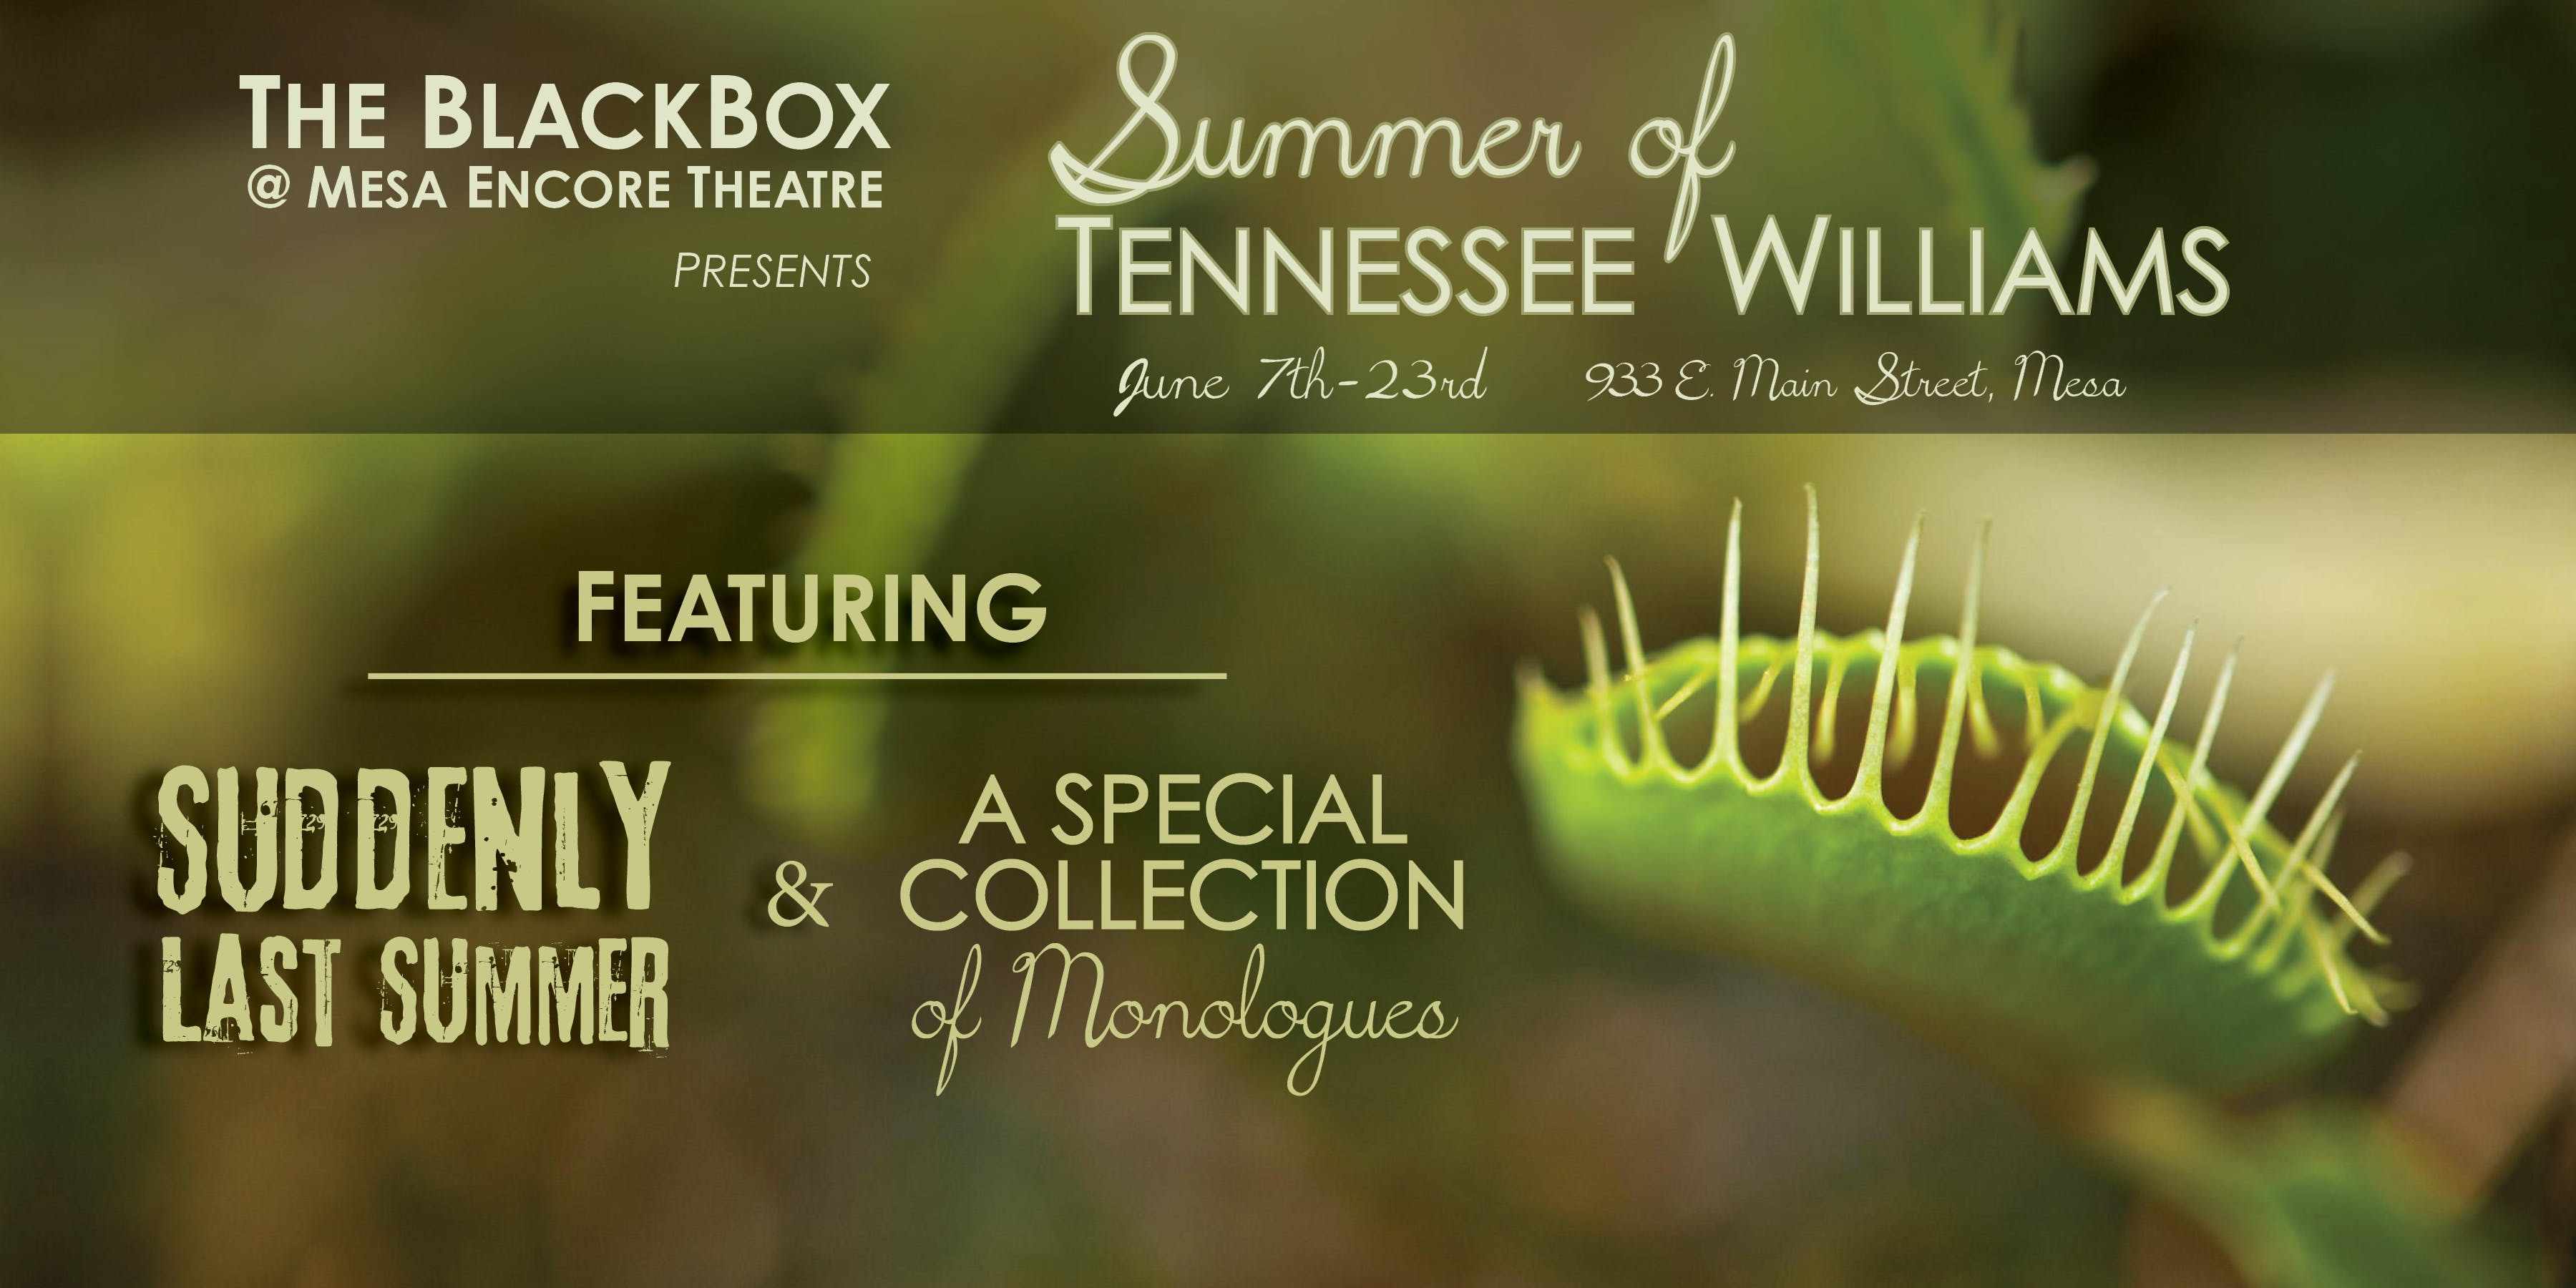 Summer of Tennessee Williams